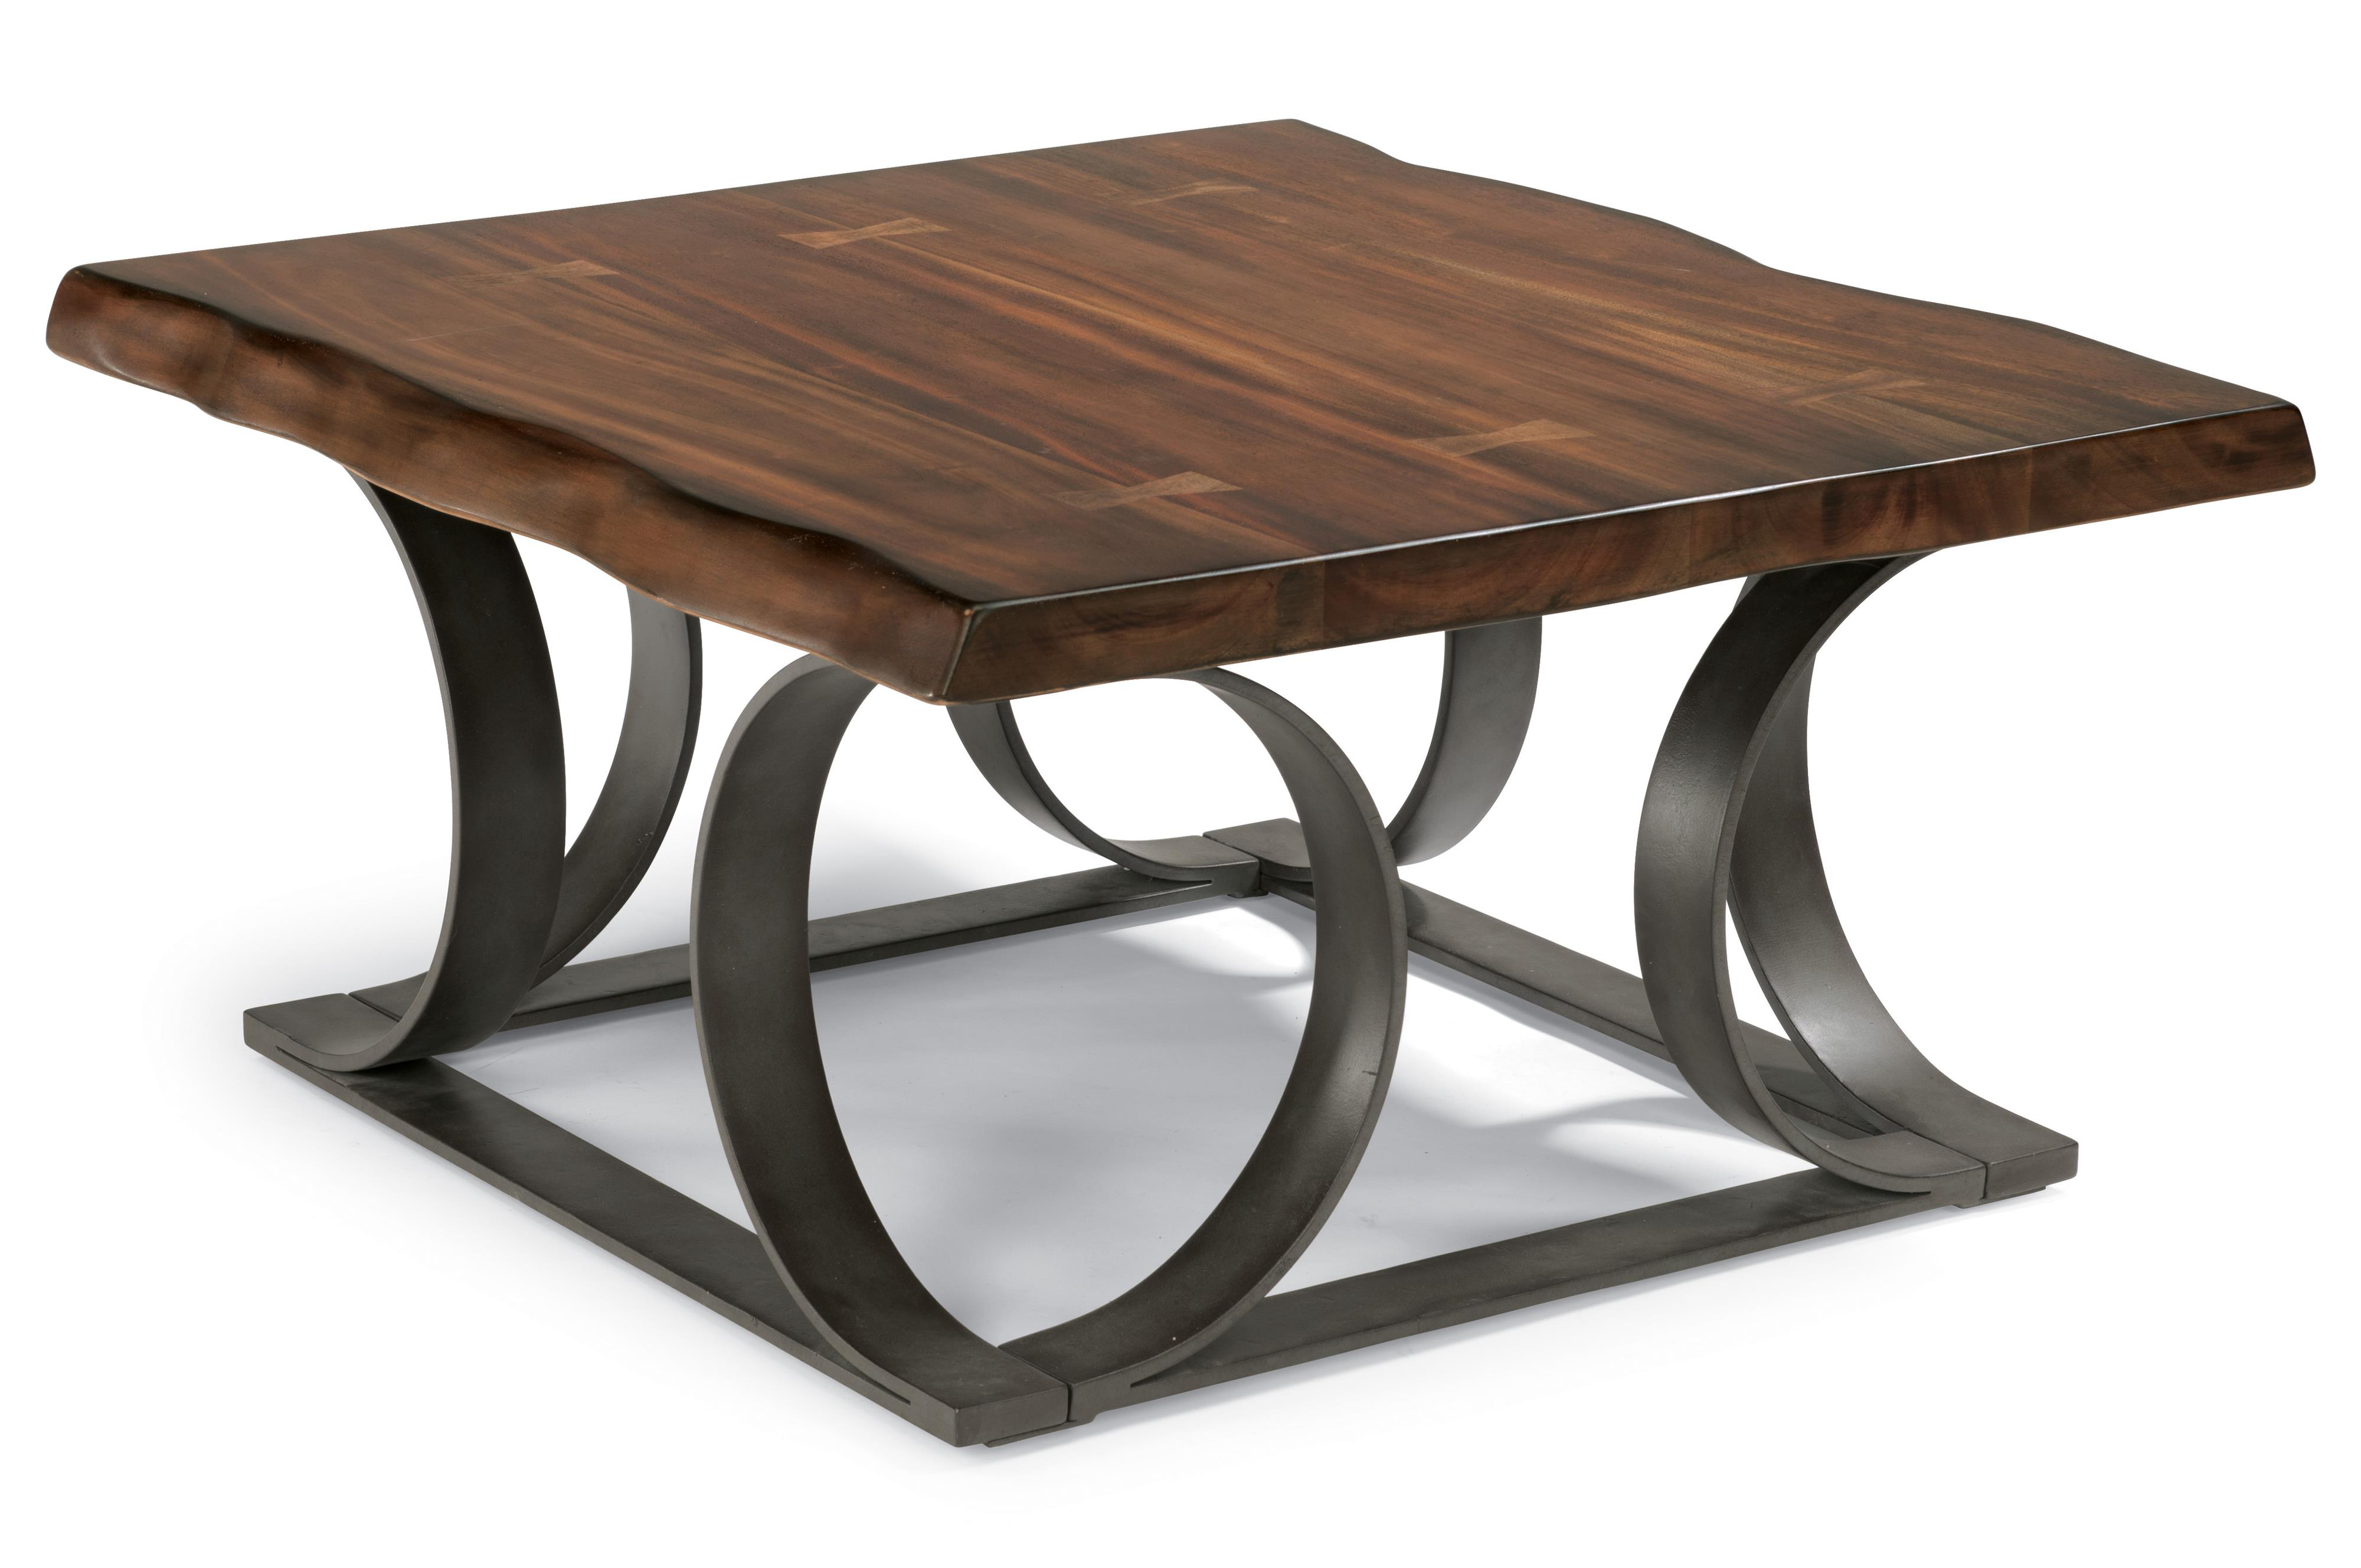 Rustic Log Cut Square Cocktail Table with Dark Metal Base by